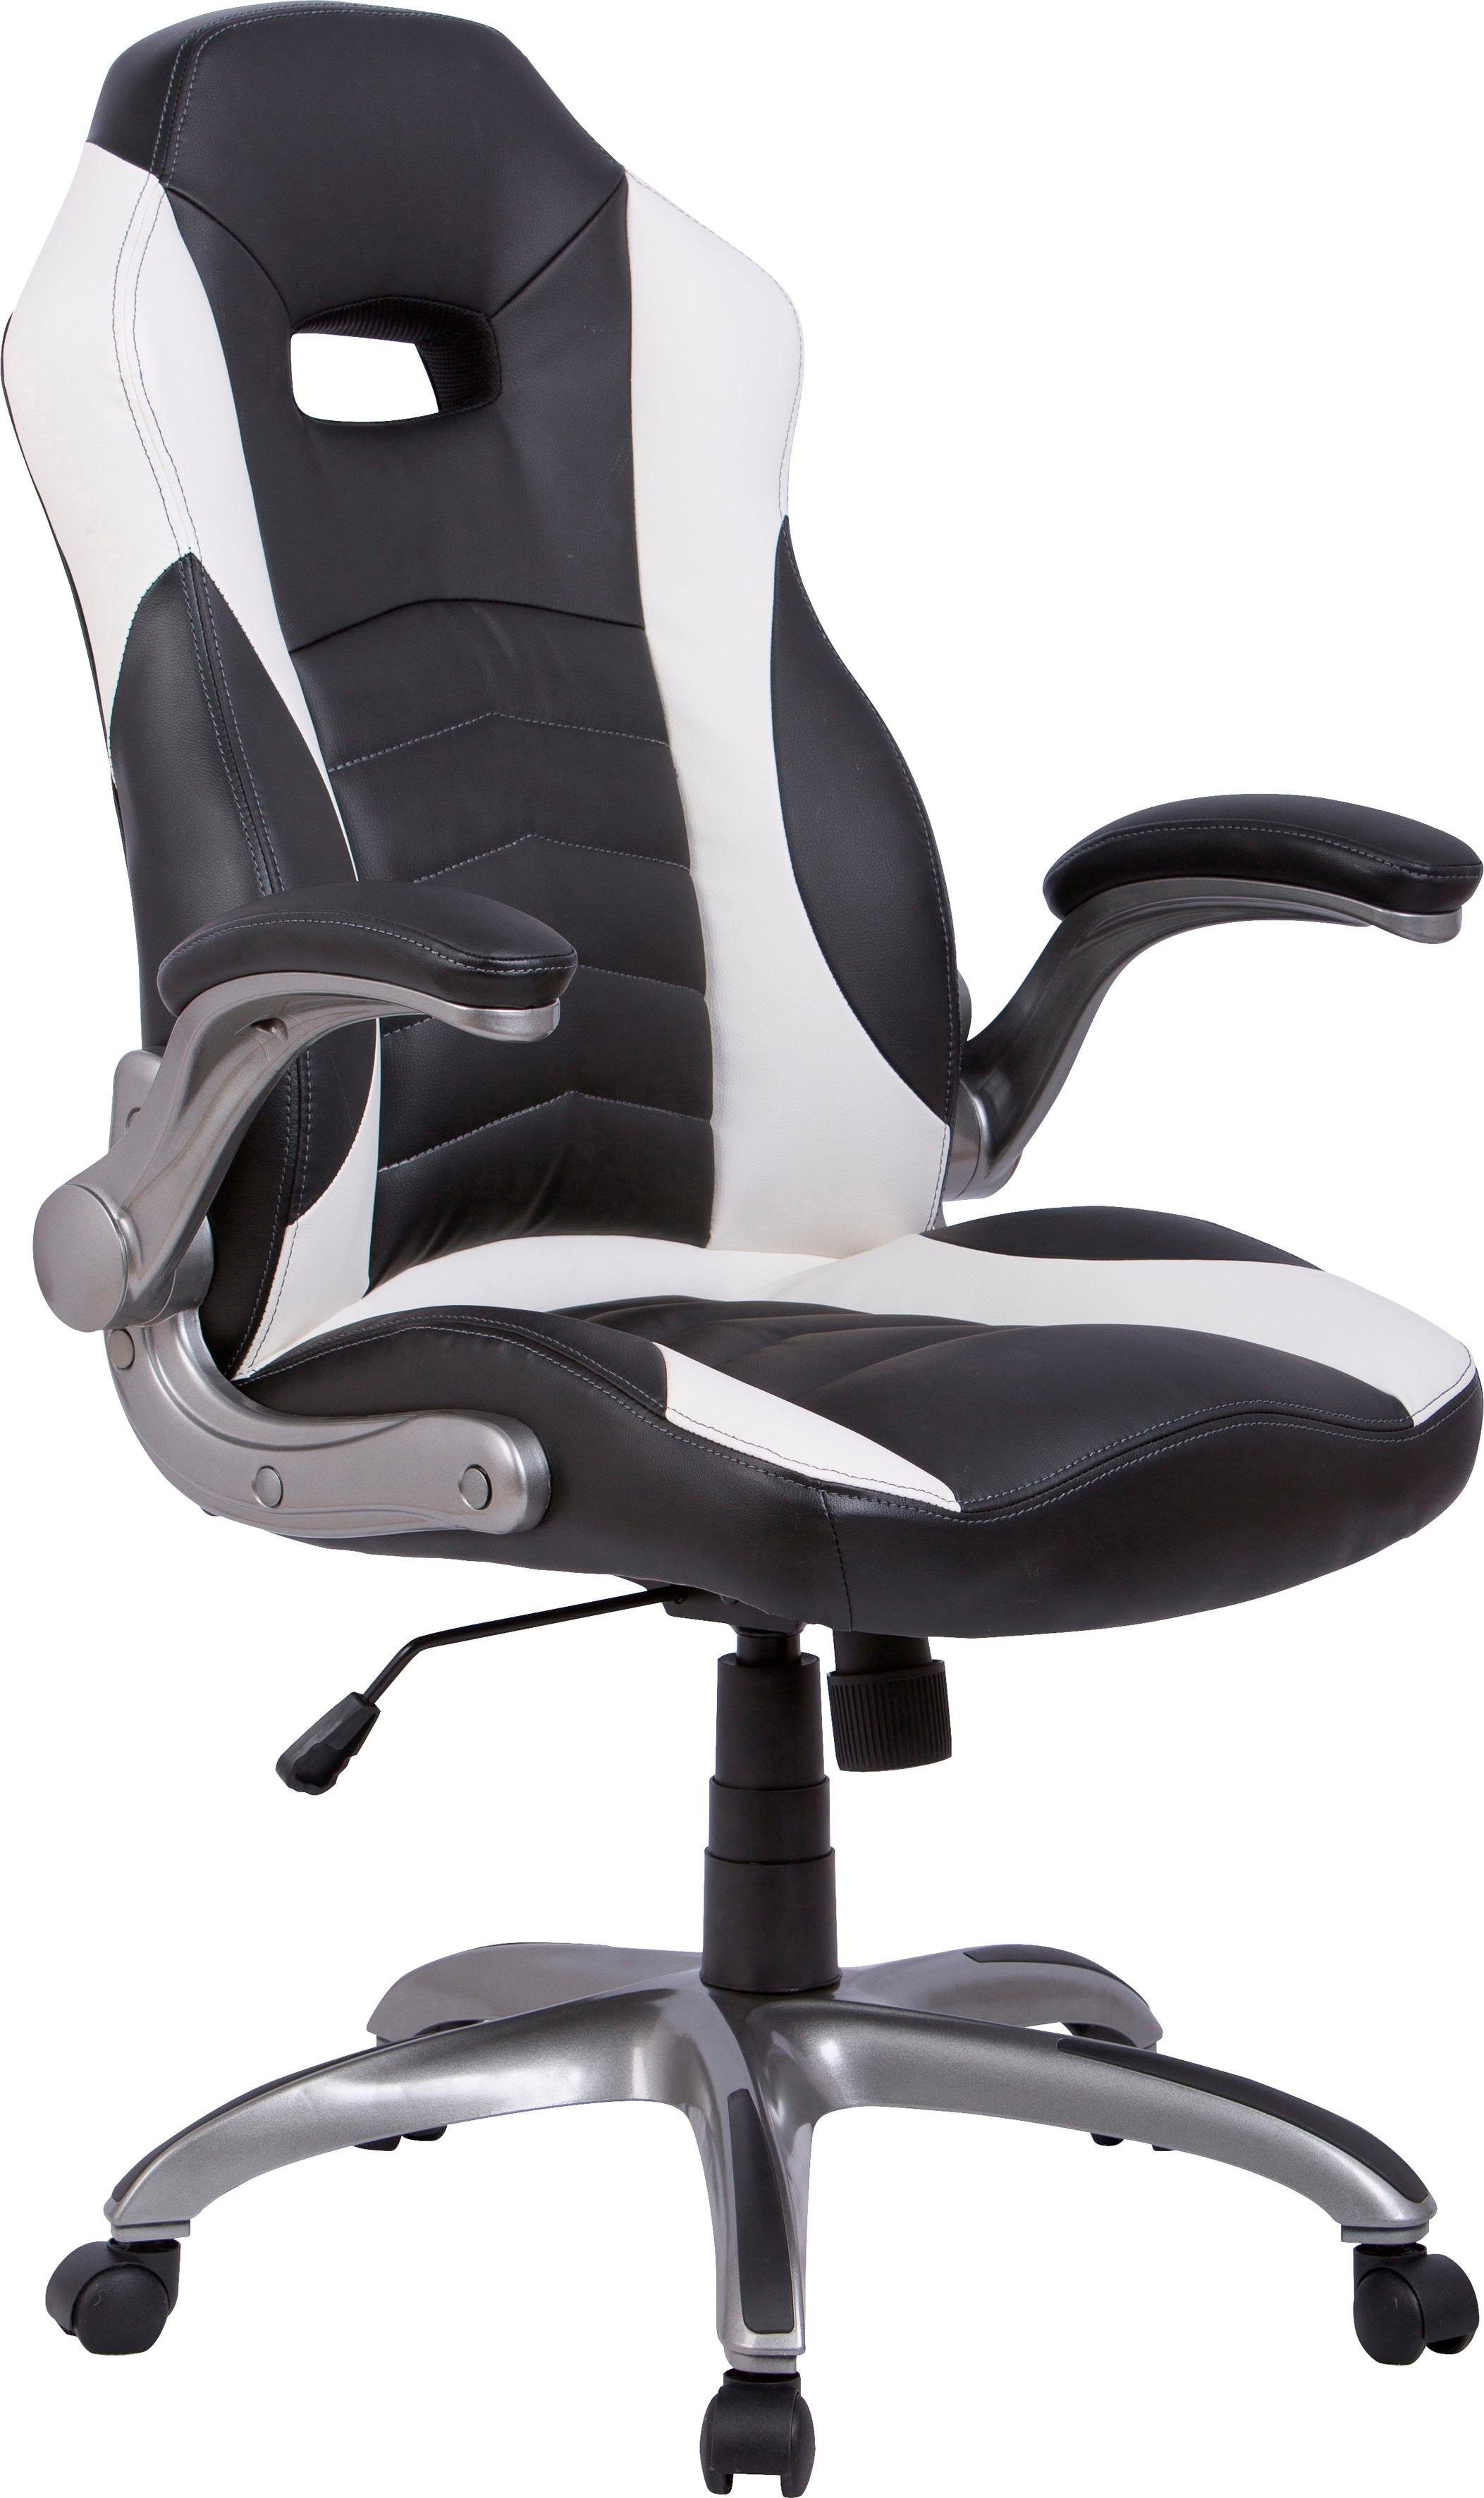 Gaming Chair Technik & Freizeit/Technik/Gaming-Shop/Gaming-Zubehör